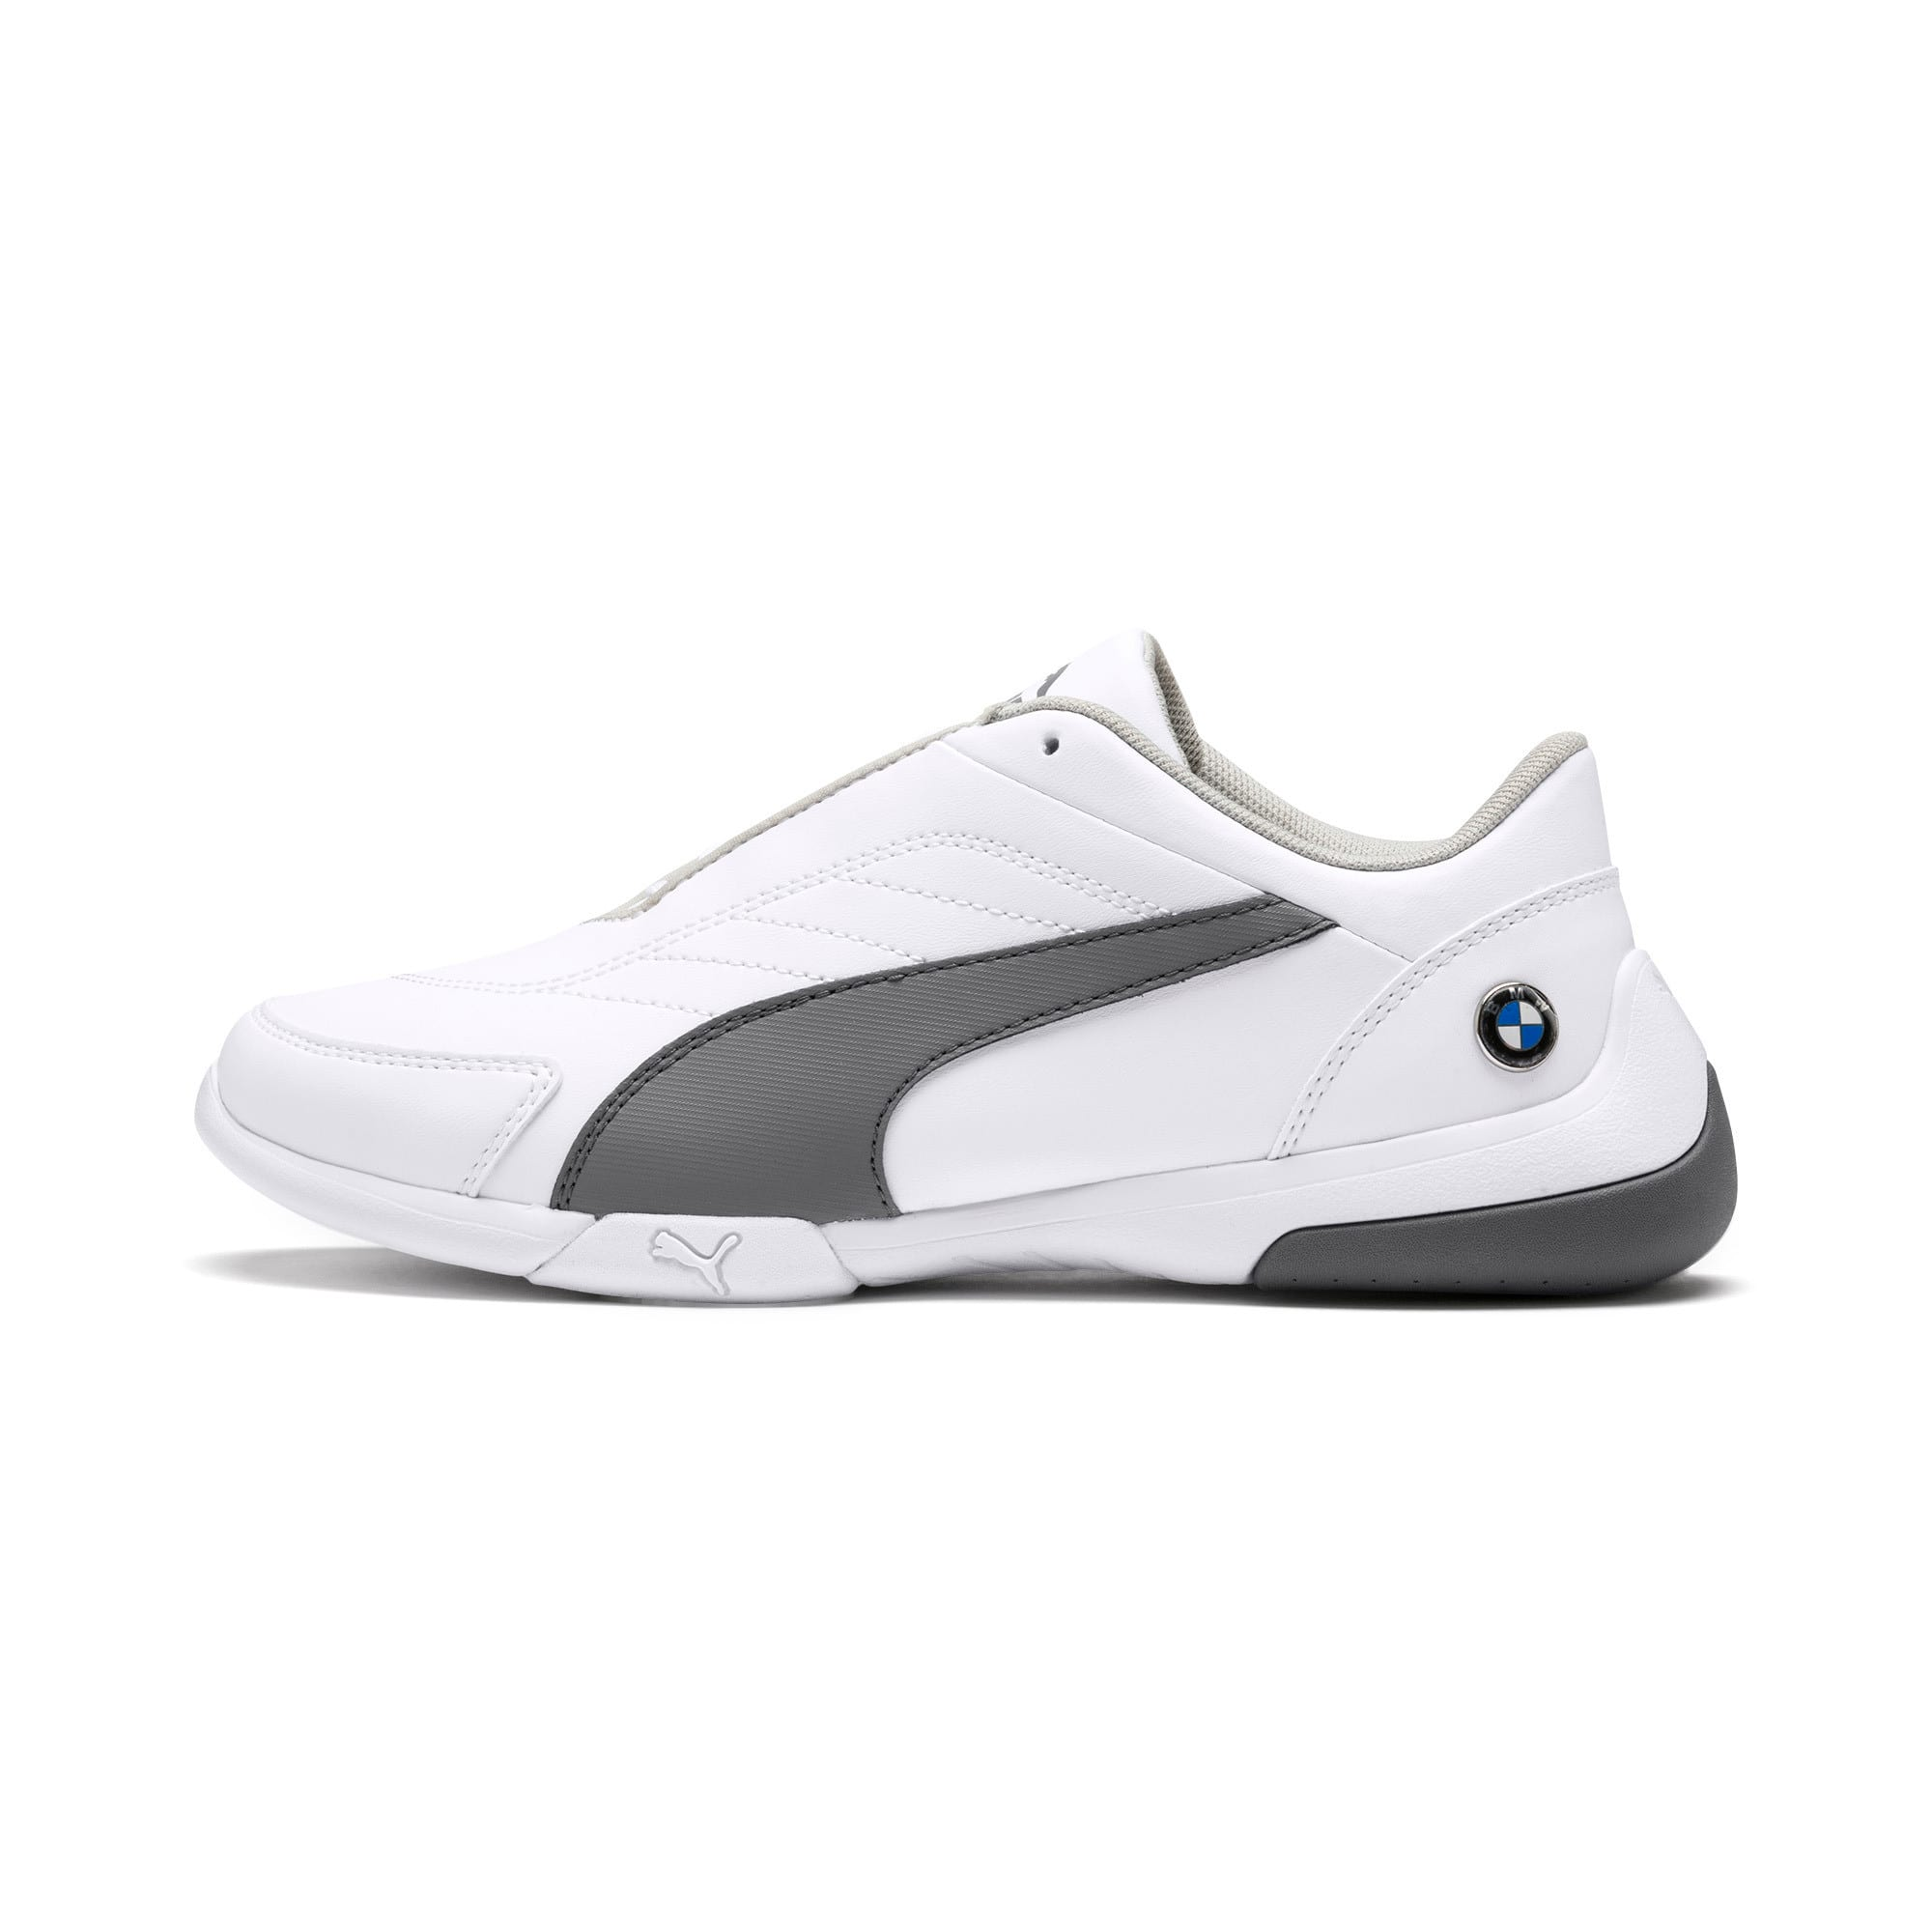 Thumbnail 1 of BMW M Kart Cat III Youth Trainers, Puma White-Smoked Pearl, medium-IND